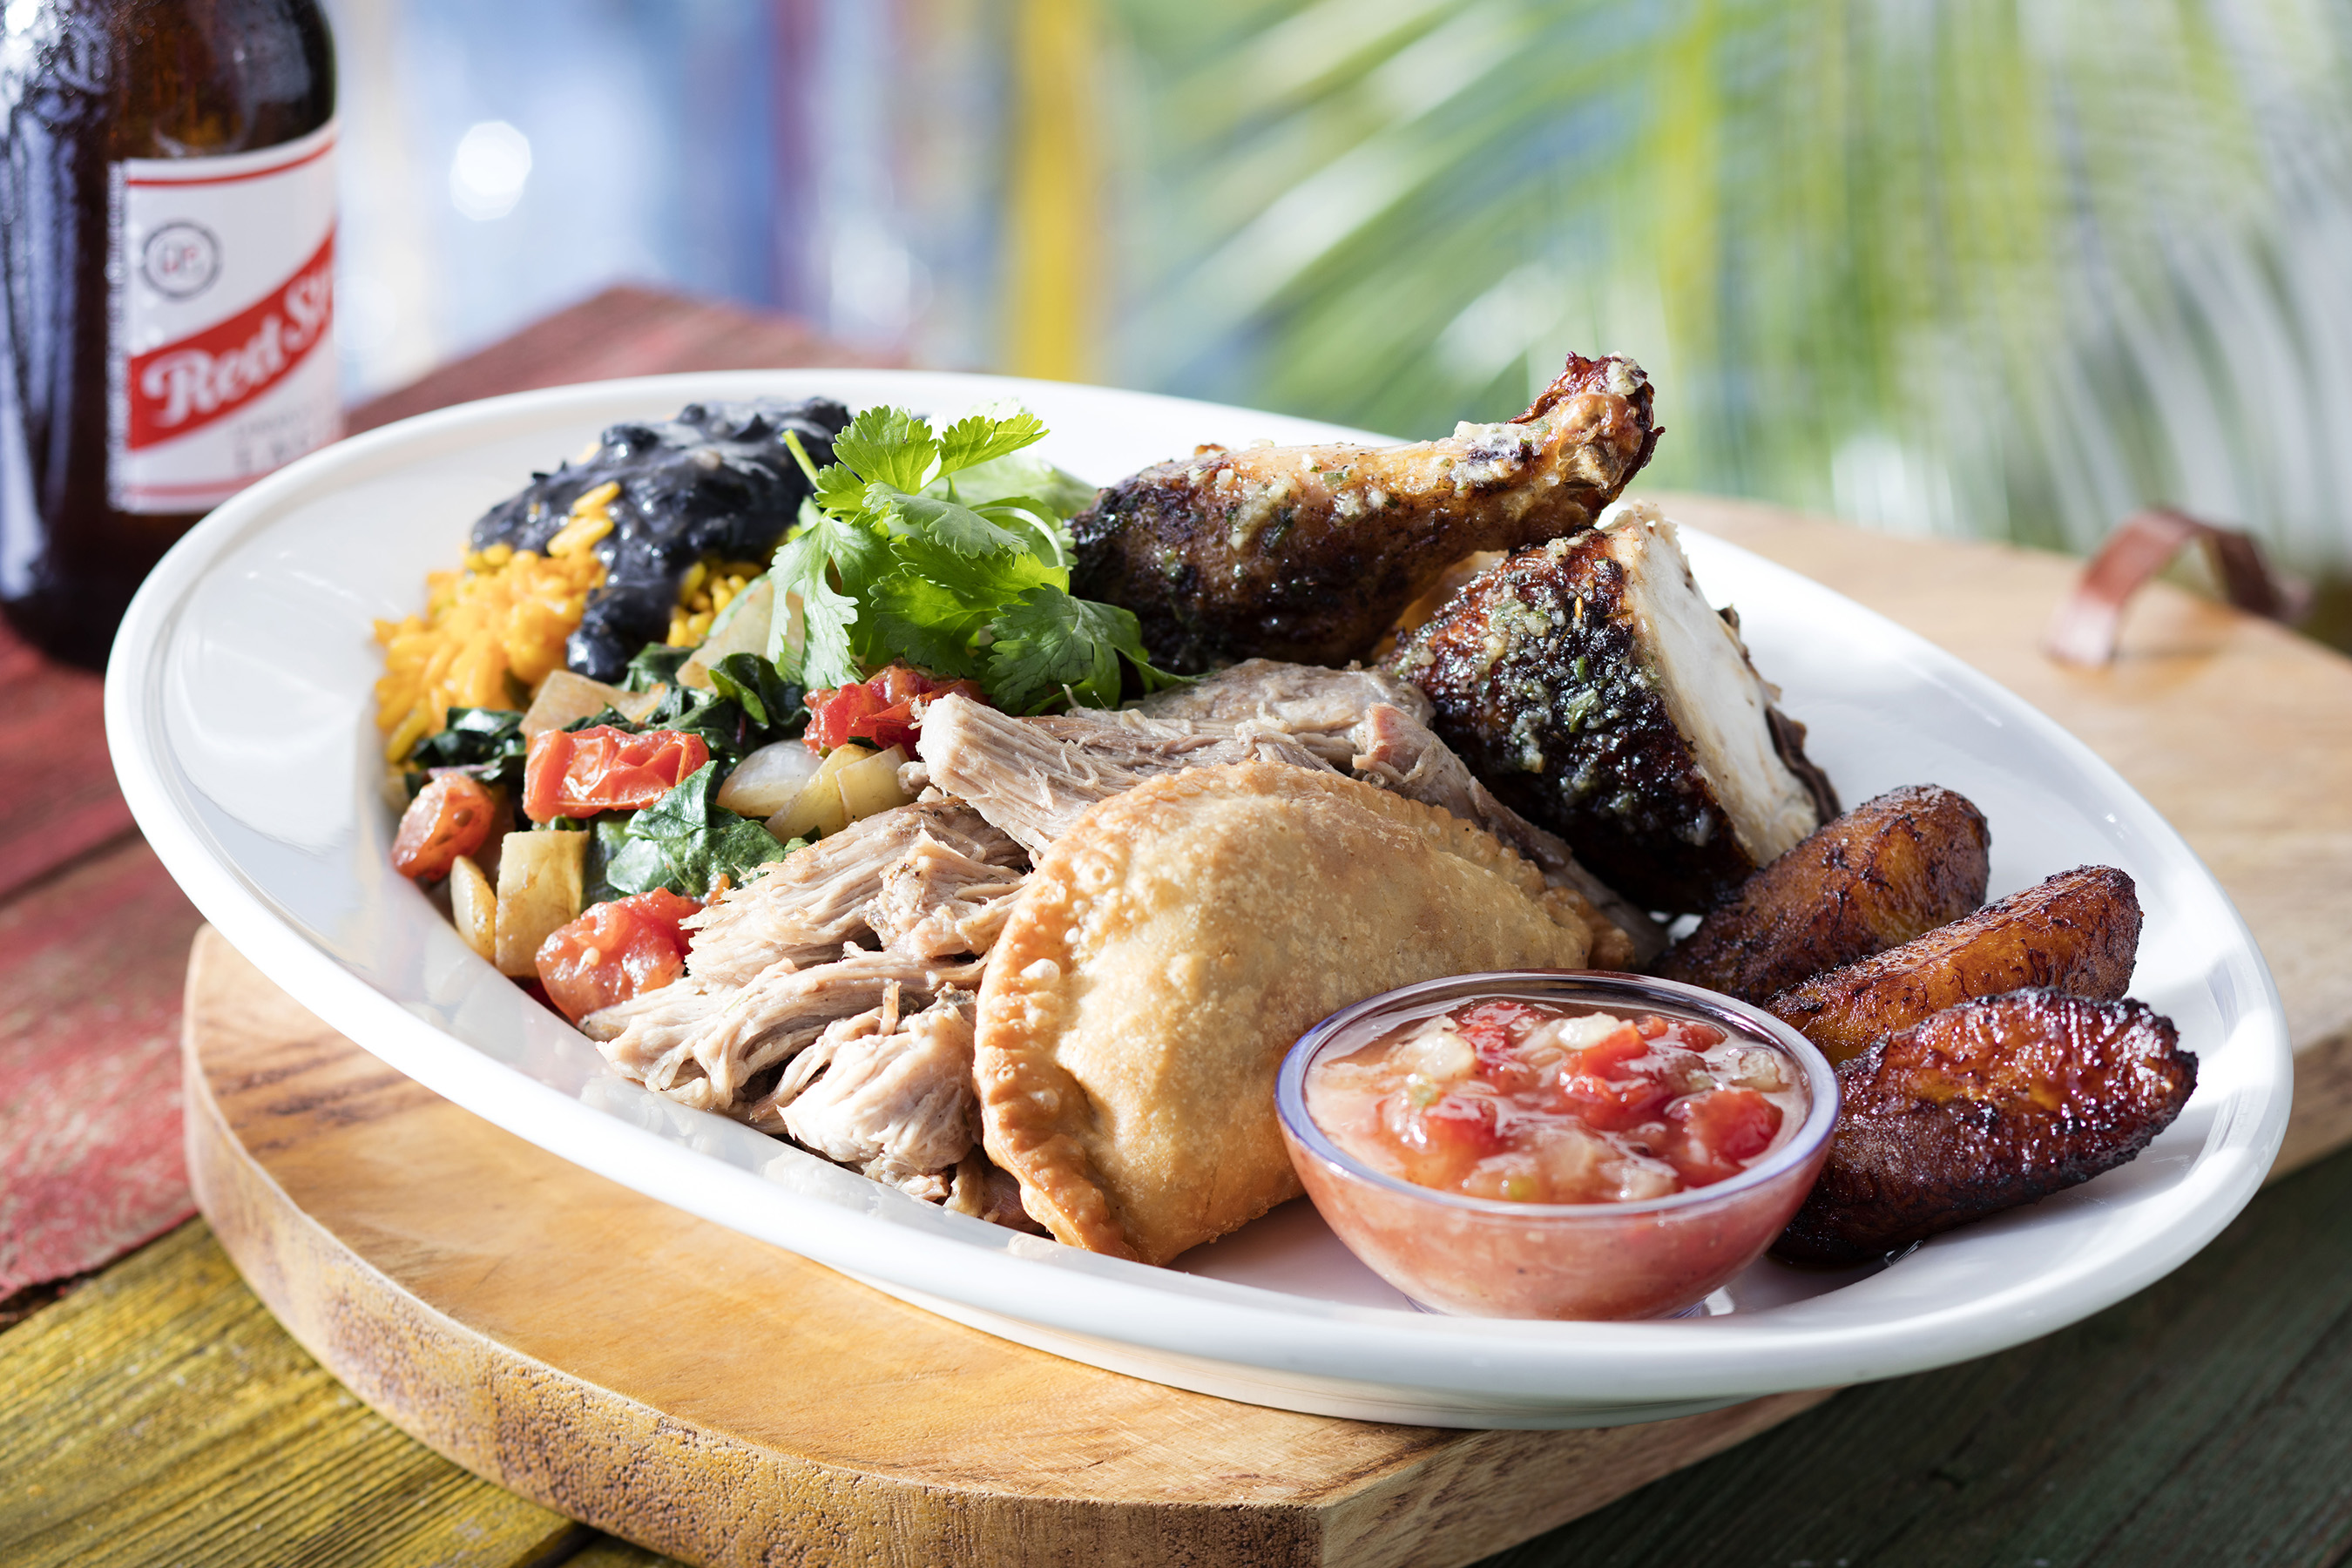 Taste of Jamaica: Feast on this festive plate of pulled pork, jerk chicken, beef empanadas, callaloo, sweet plantains, yellow rice and black beans.